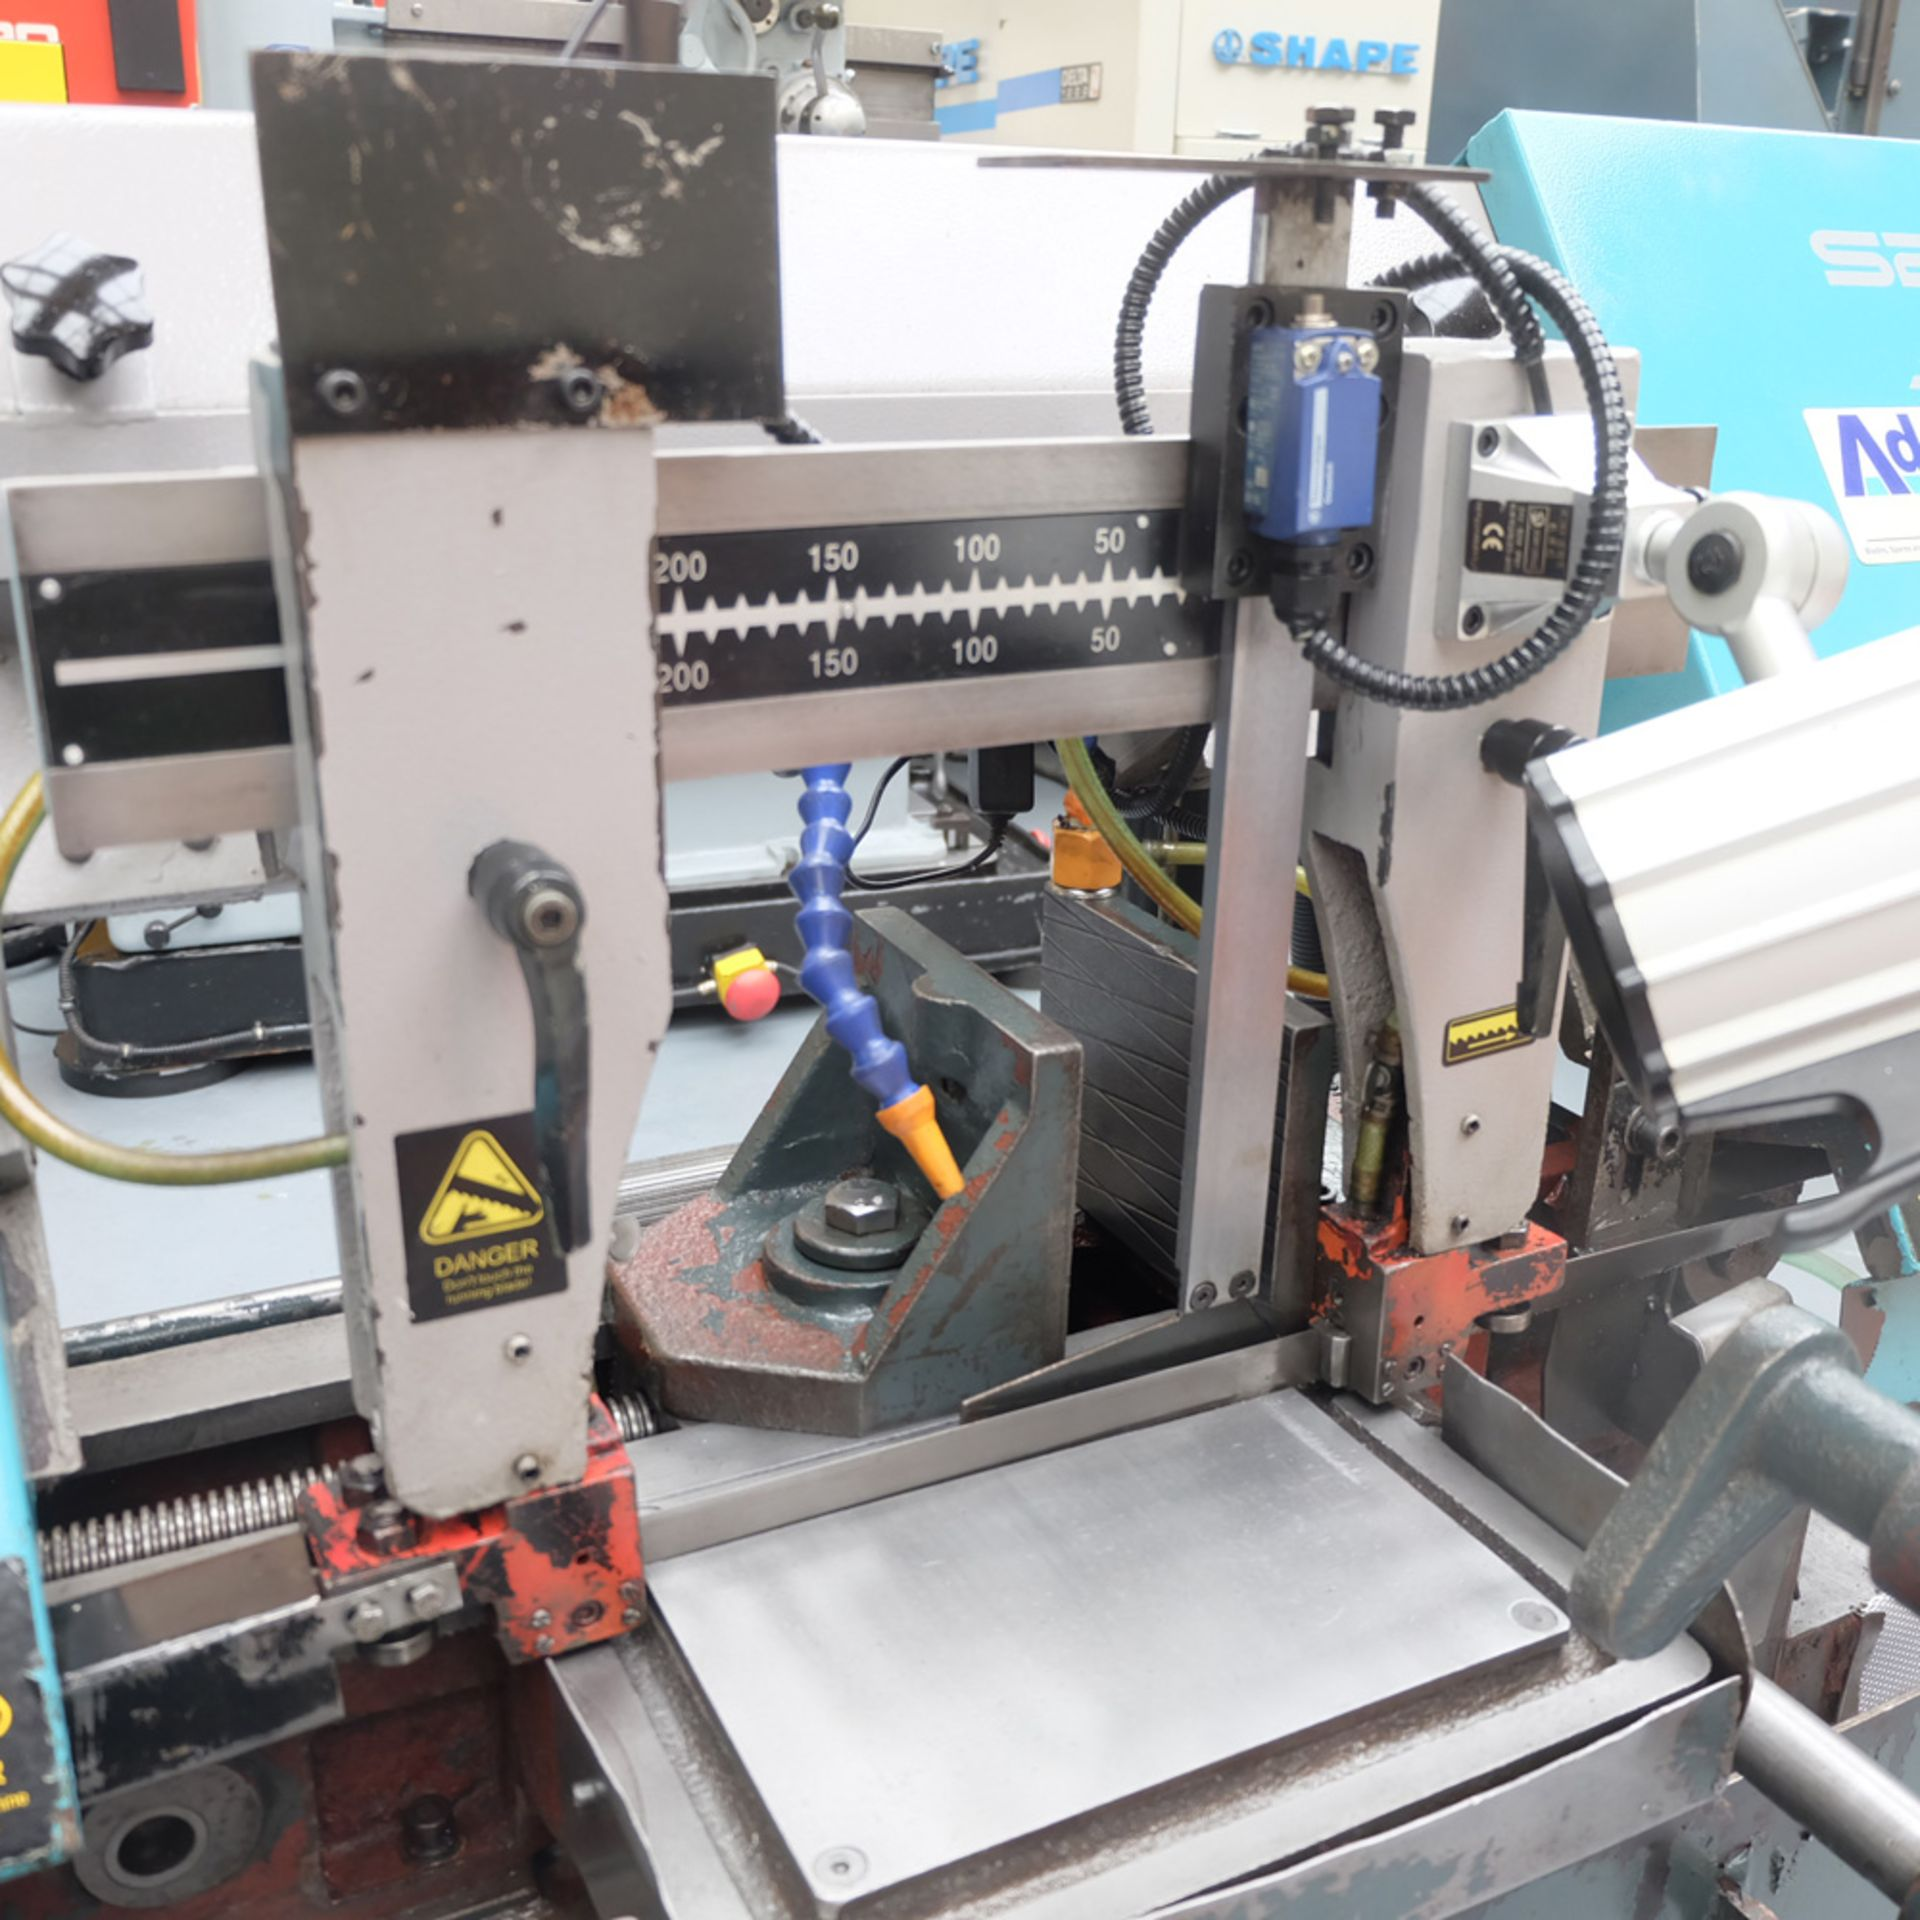 Julihuang By Addison Model S280 MKII Semi-Auto Horizontal Bandsaw. - Image 3 of 9